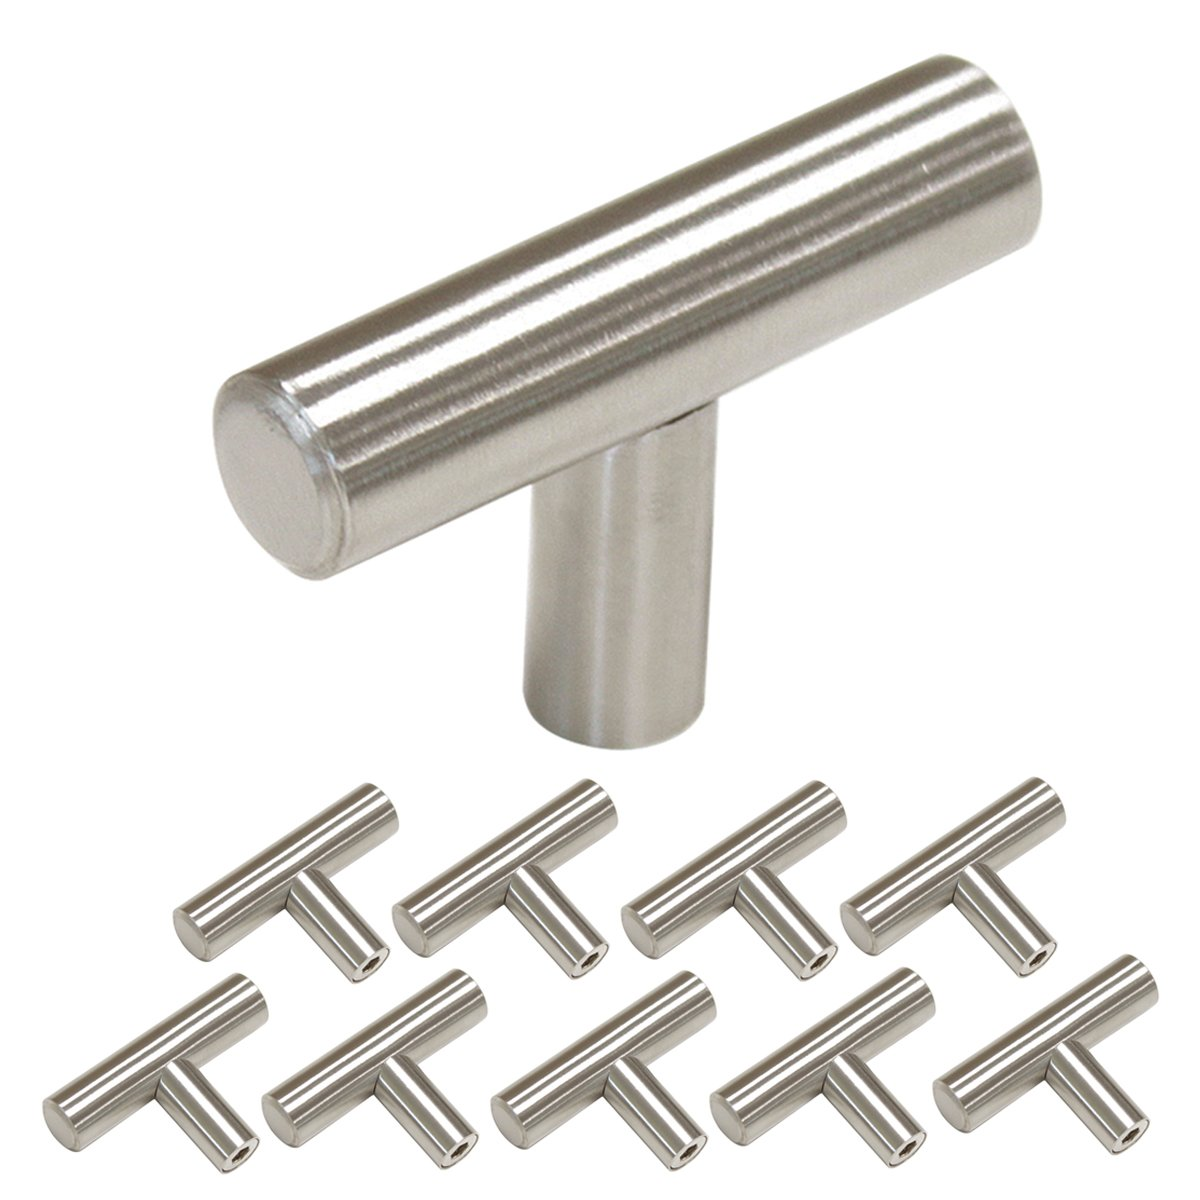 Single Hole Cabinet Pulls and Knobs 10 Pack Homdiy HD201SN 2in 50mm Length T Bar Kitchen Cabinet Door Handles Brushed Stainless Steel